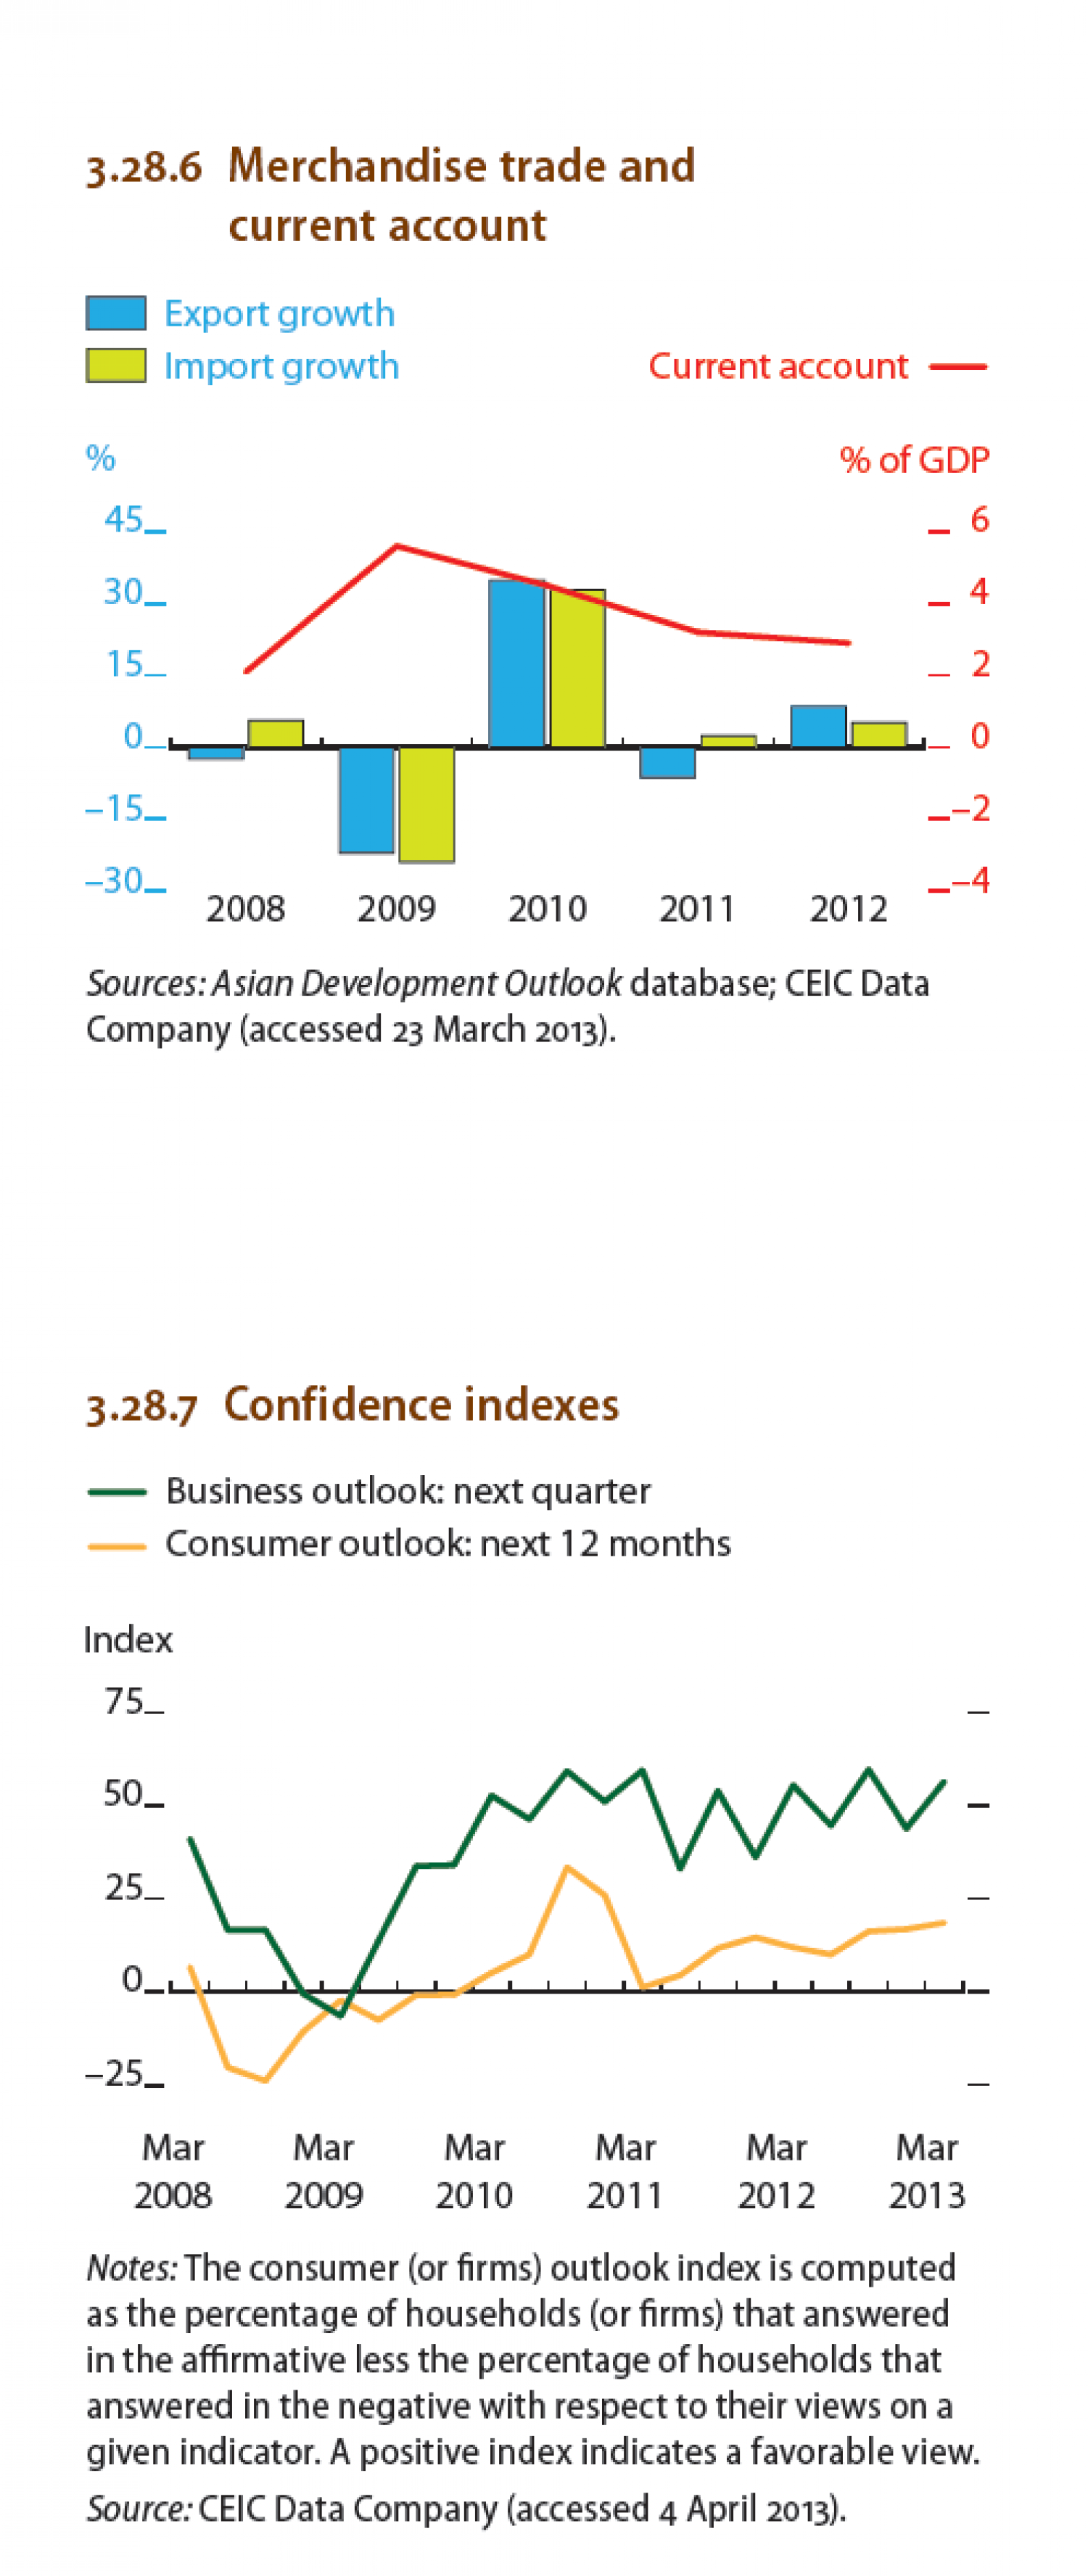 Philippines : Merchandise trade and current account, Confidence indexes Infographic